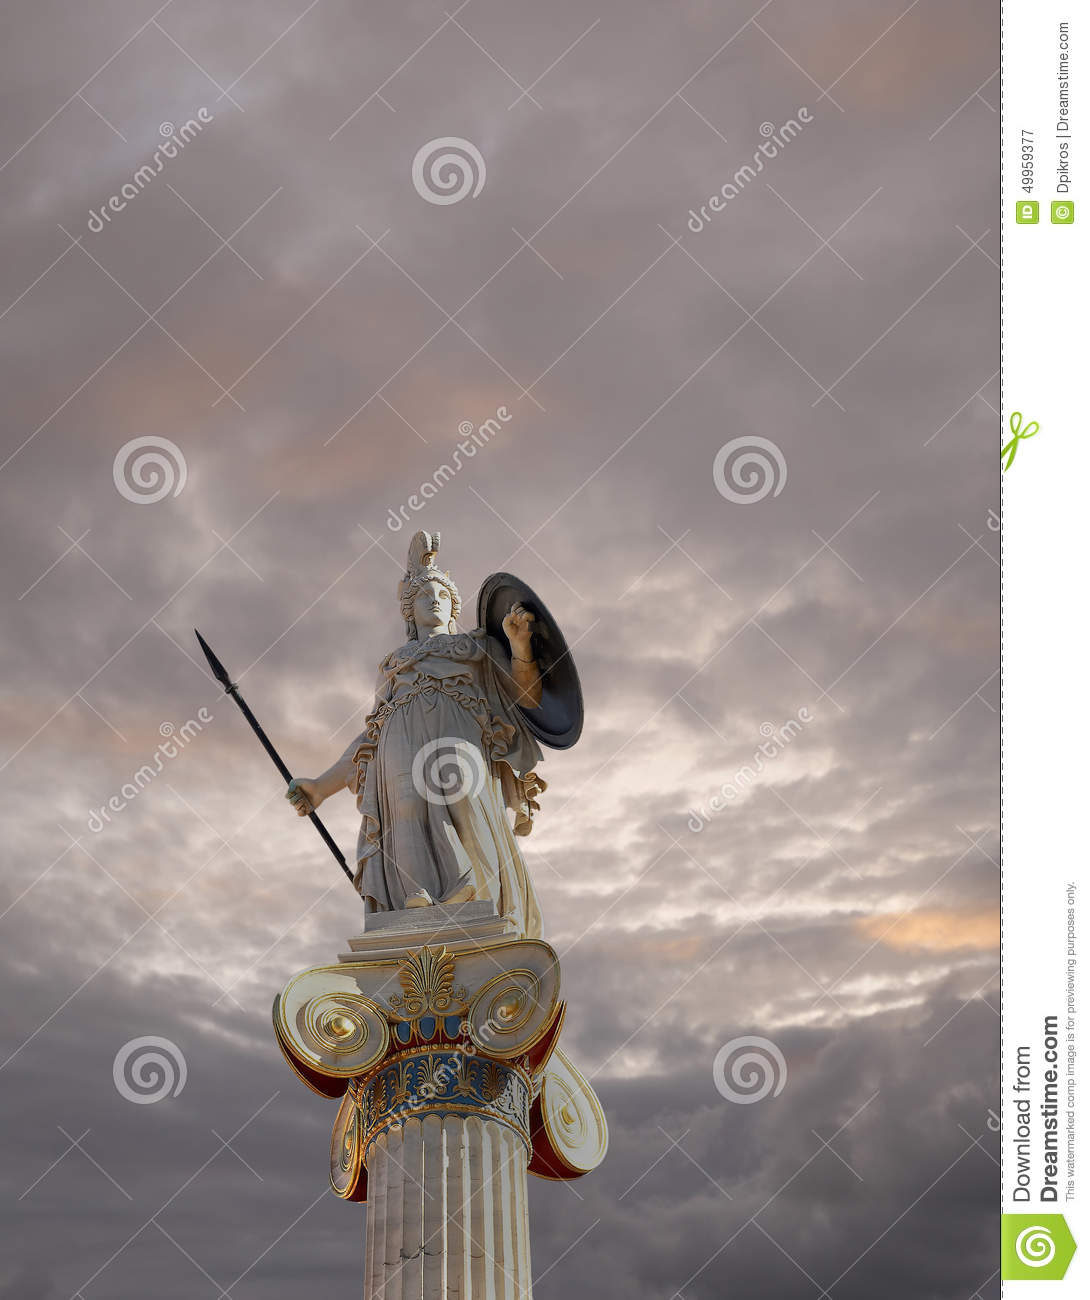 Athena statue, the goddess of wisdom and philosophy